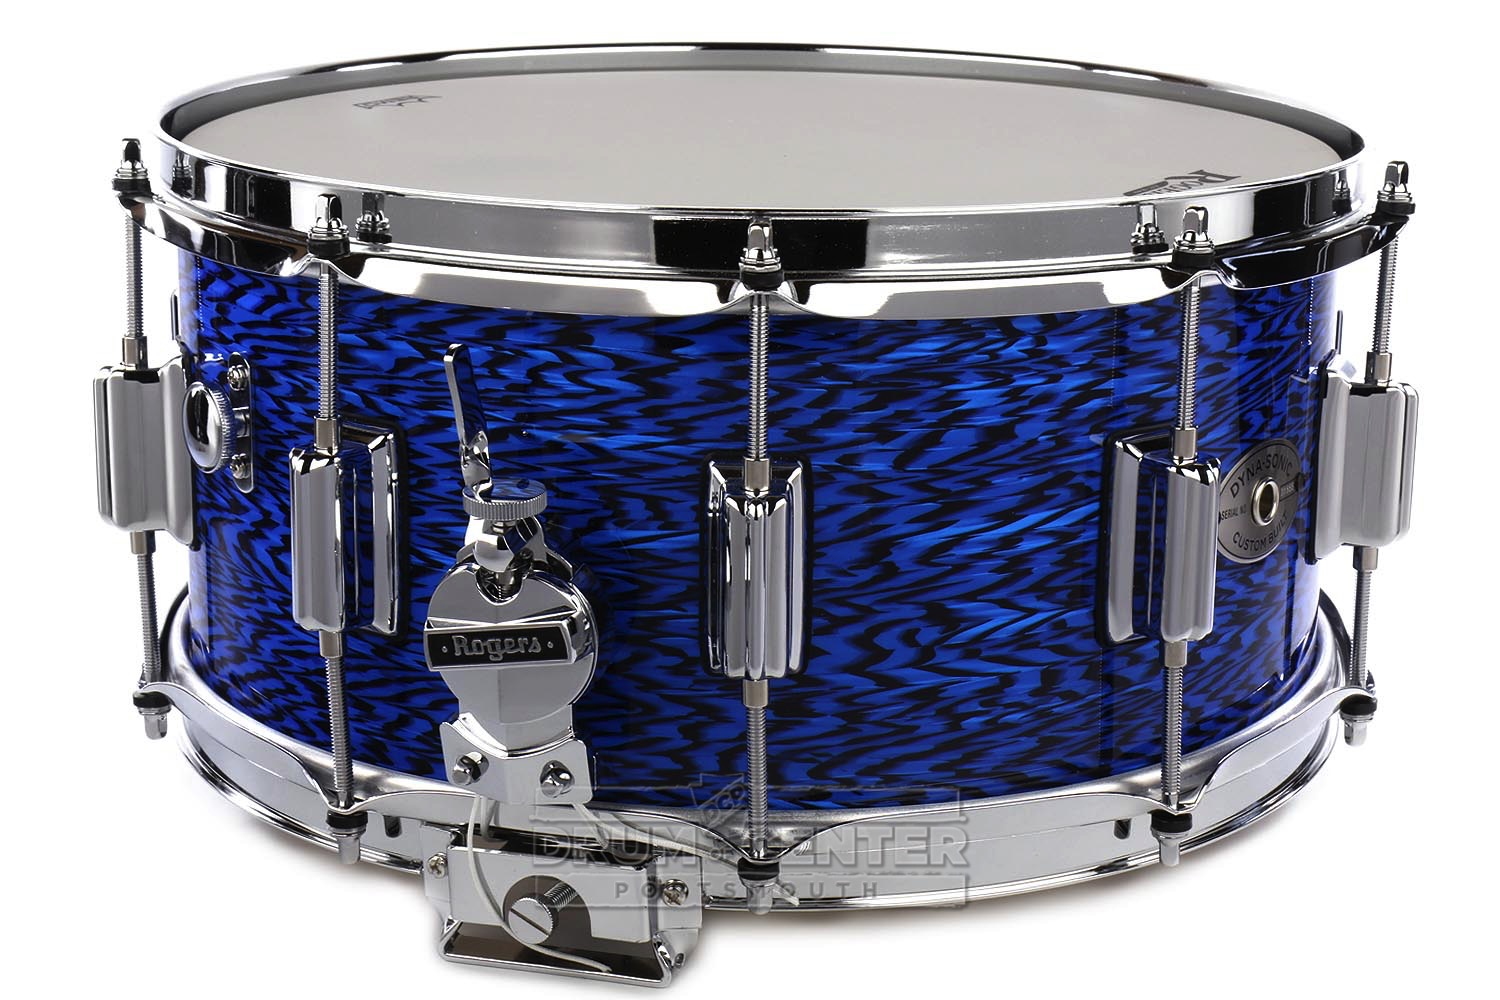 rogers dyna sonic wood shell snare drum 14x6 5 blue onyx 4718981036524 ebay. Black Bedroom Furniture Sets. Home Design Ideas